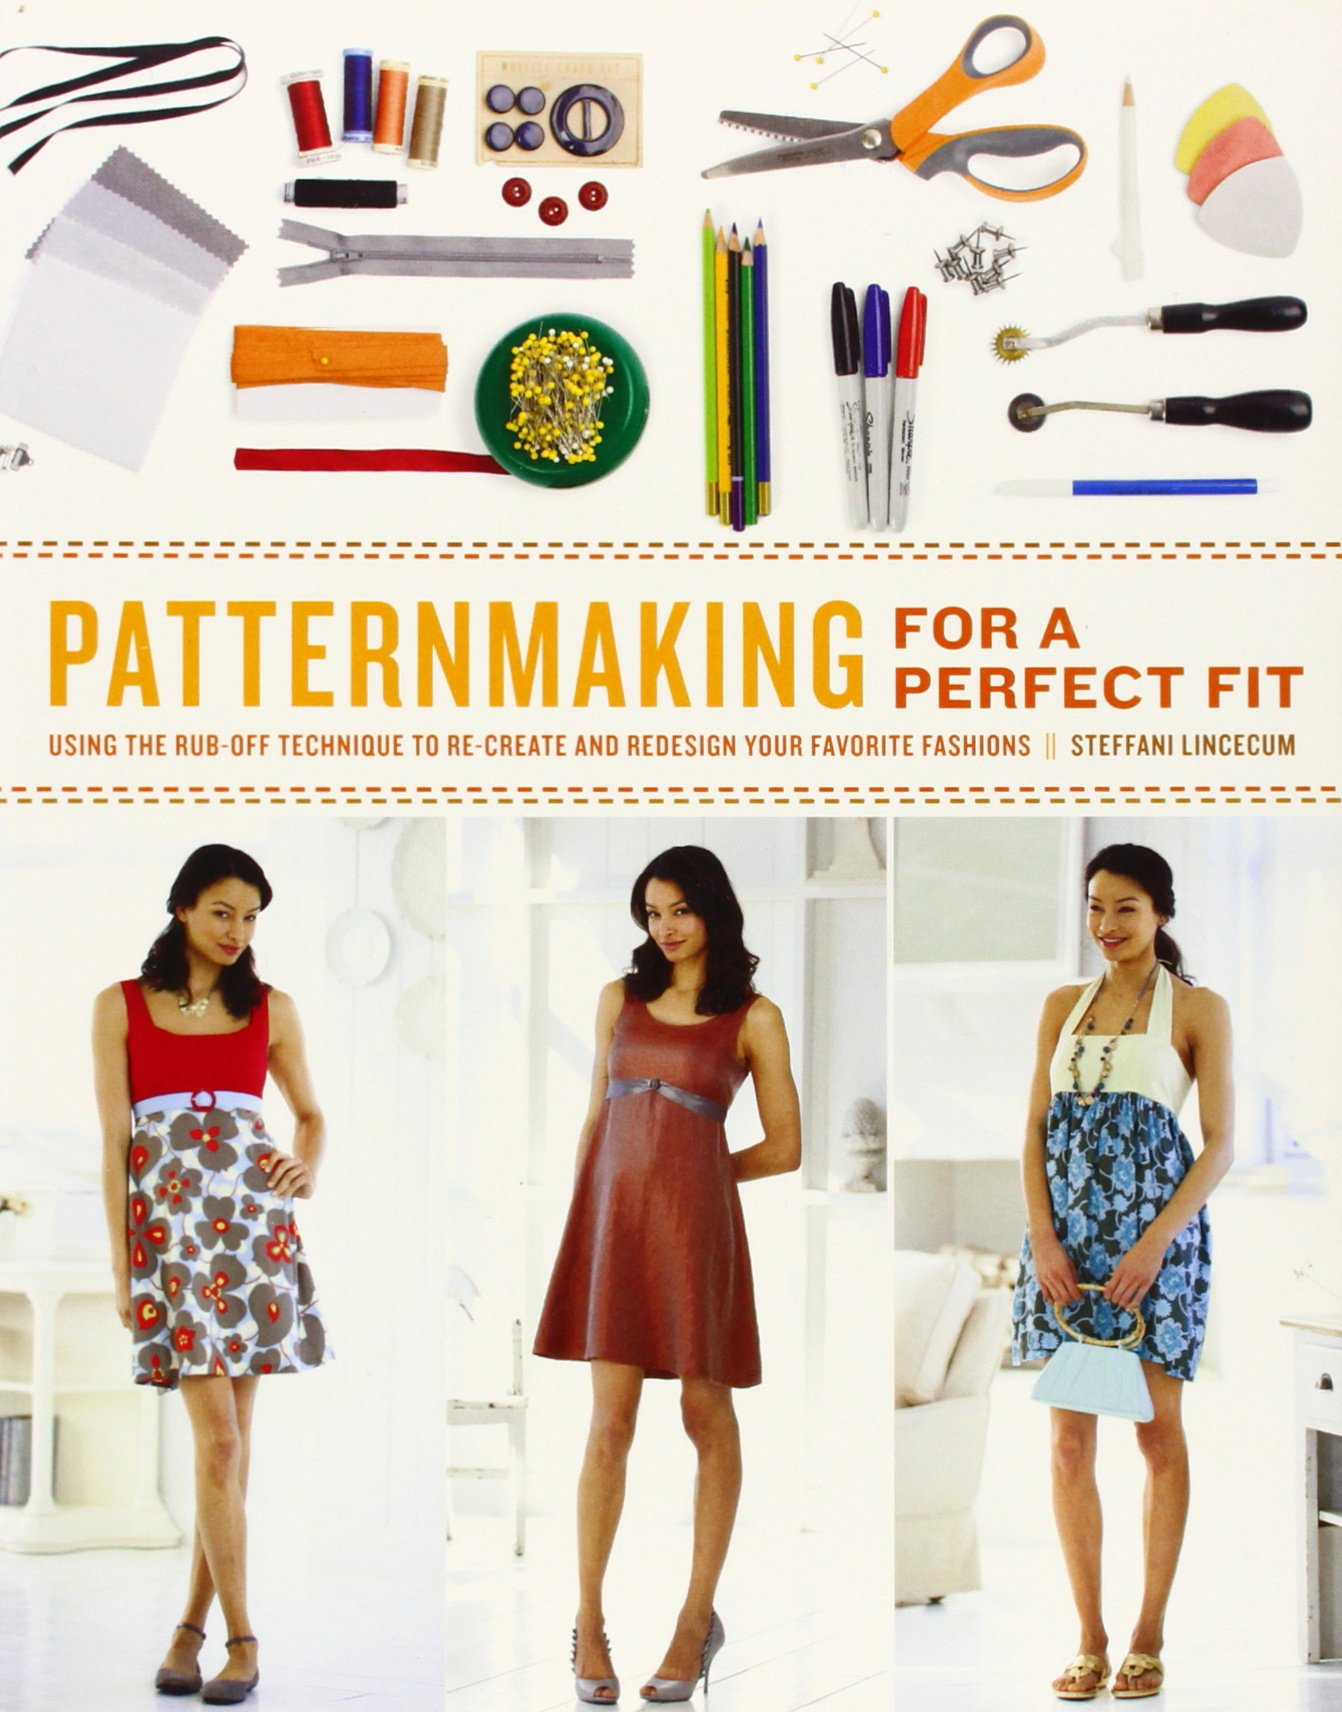 Patternmaking for a perfect fit using the rub off technique to re patternmaking for a perfect fit using the rub off technique to re create and redesign your favorite fashions steffani lincecum 9780823026661 amazon jeuxipadfo Image collections